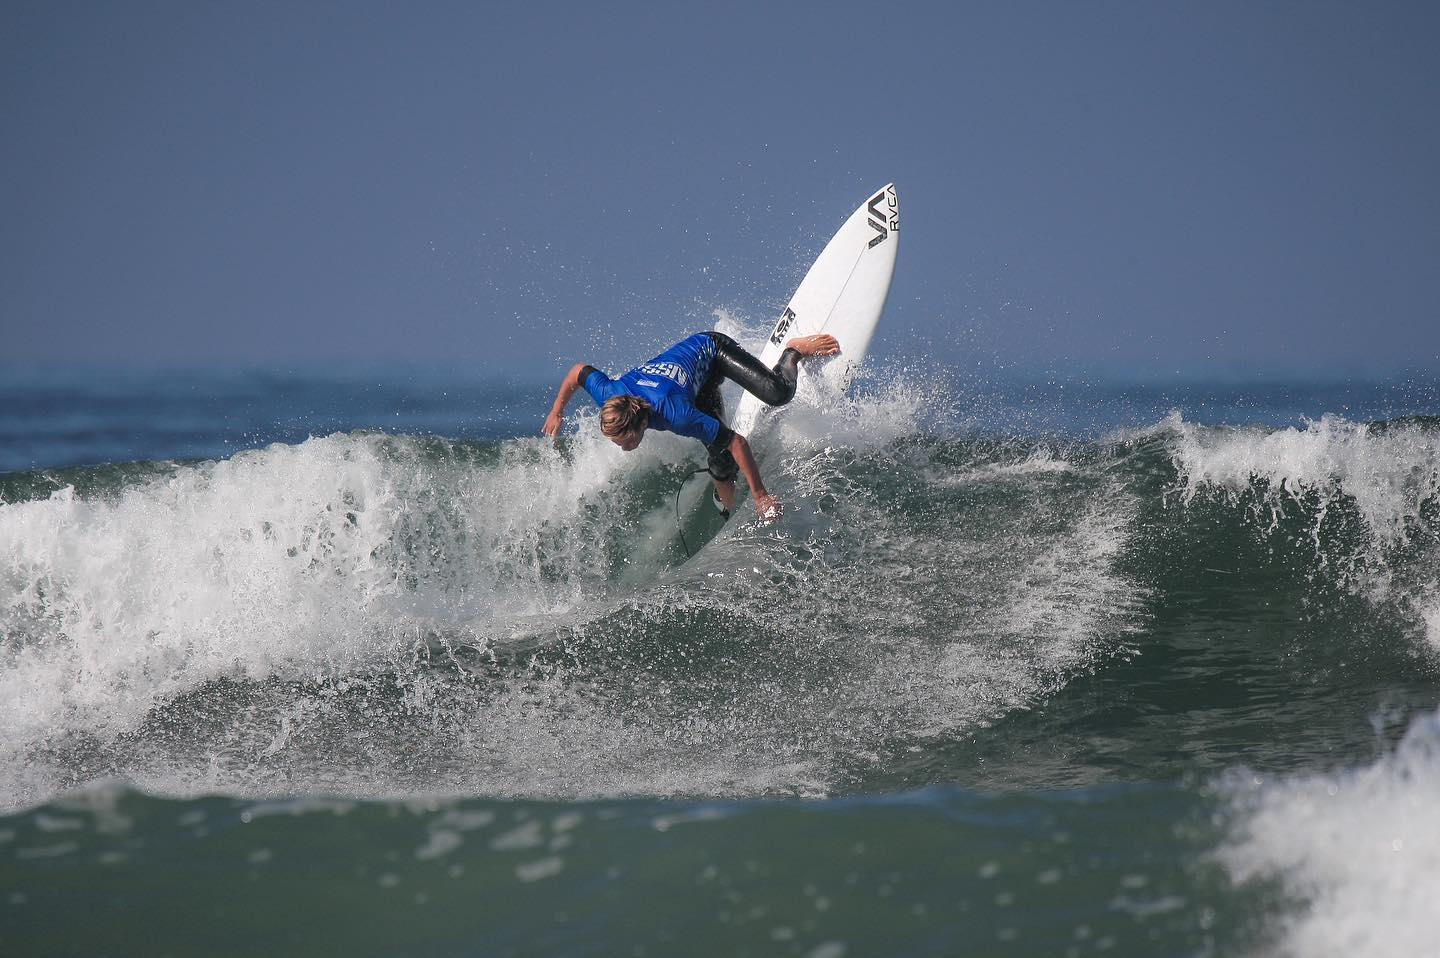 Taj Lindblad applying his backside attack to great effect en route to winning the 2019 NSSA National Title. Photo: NSSA